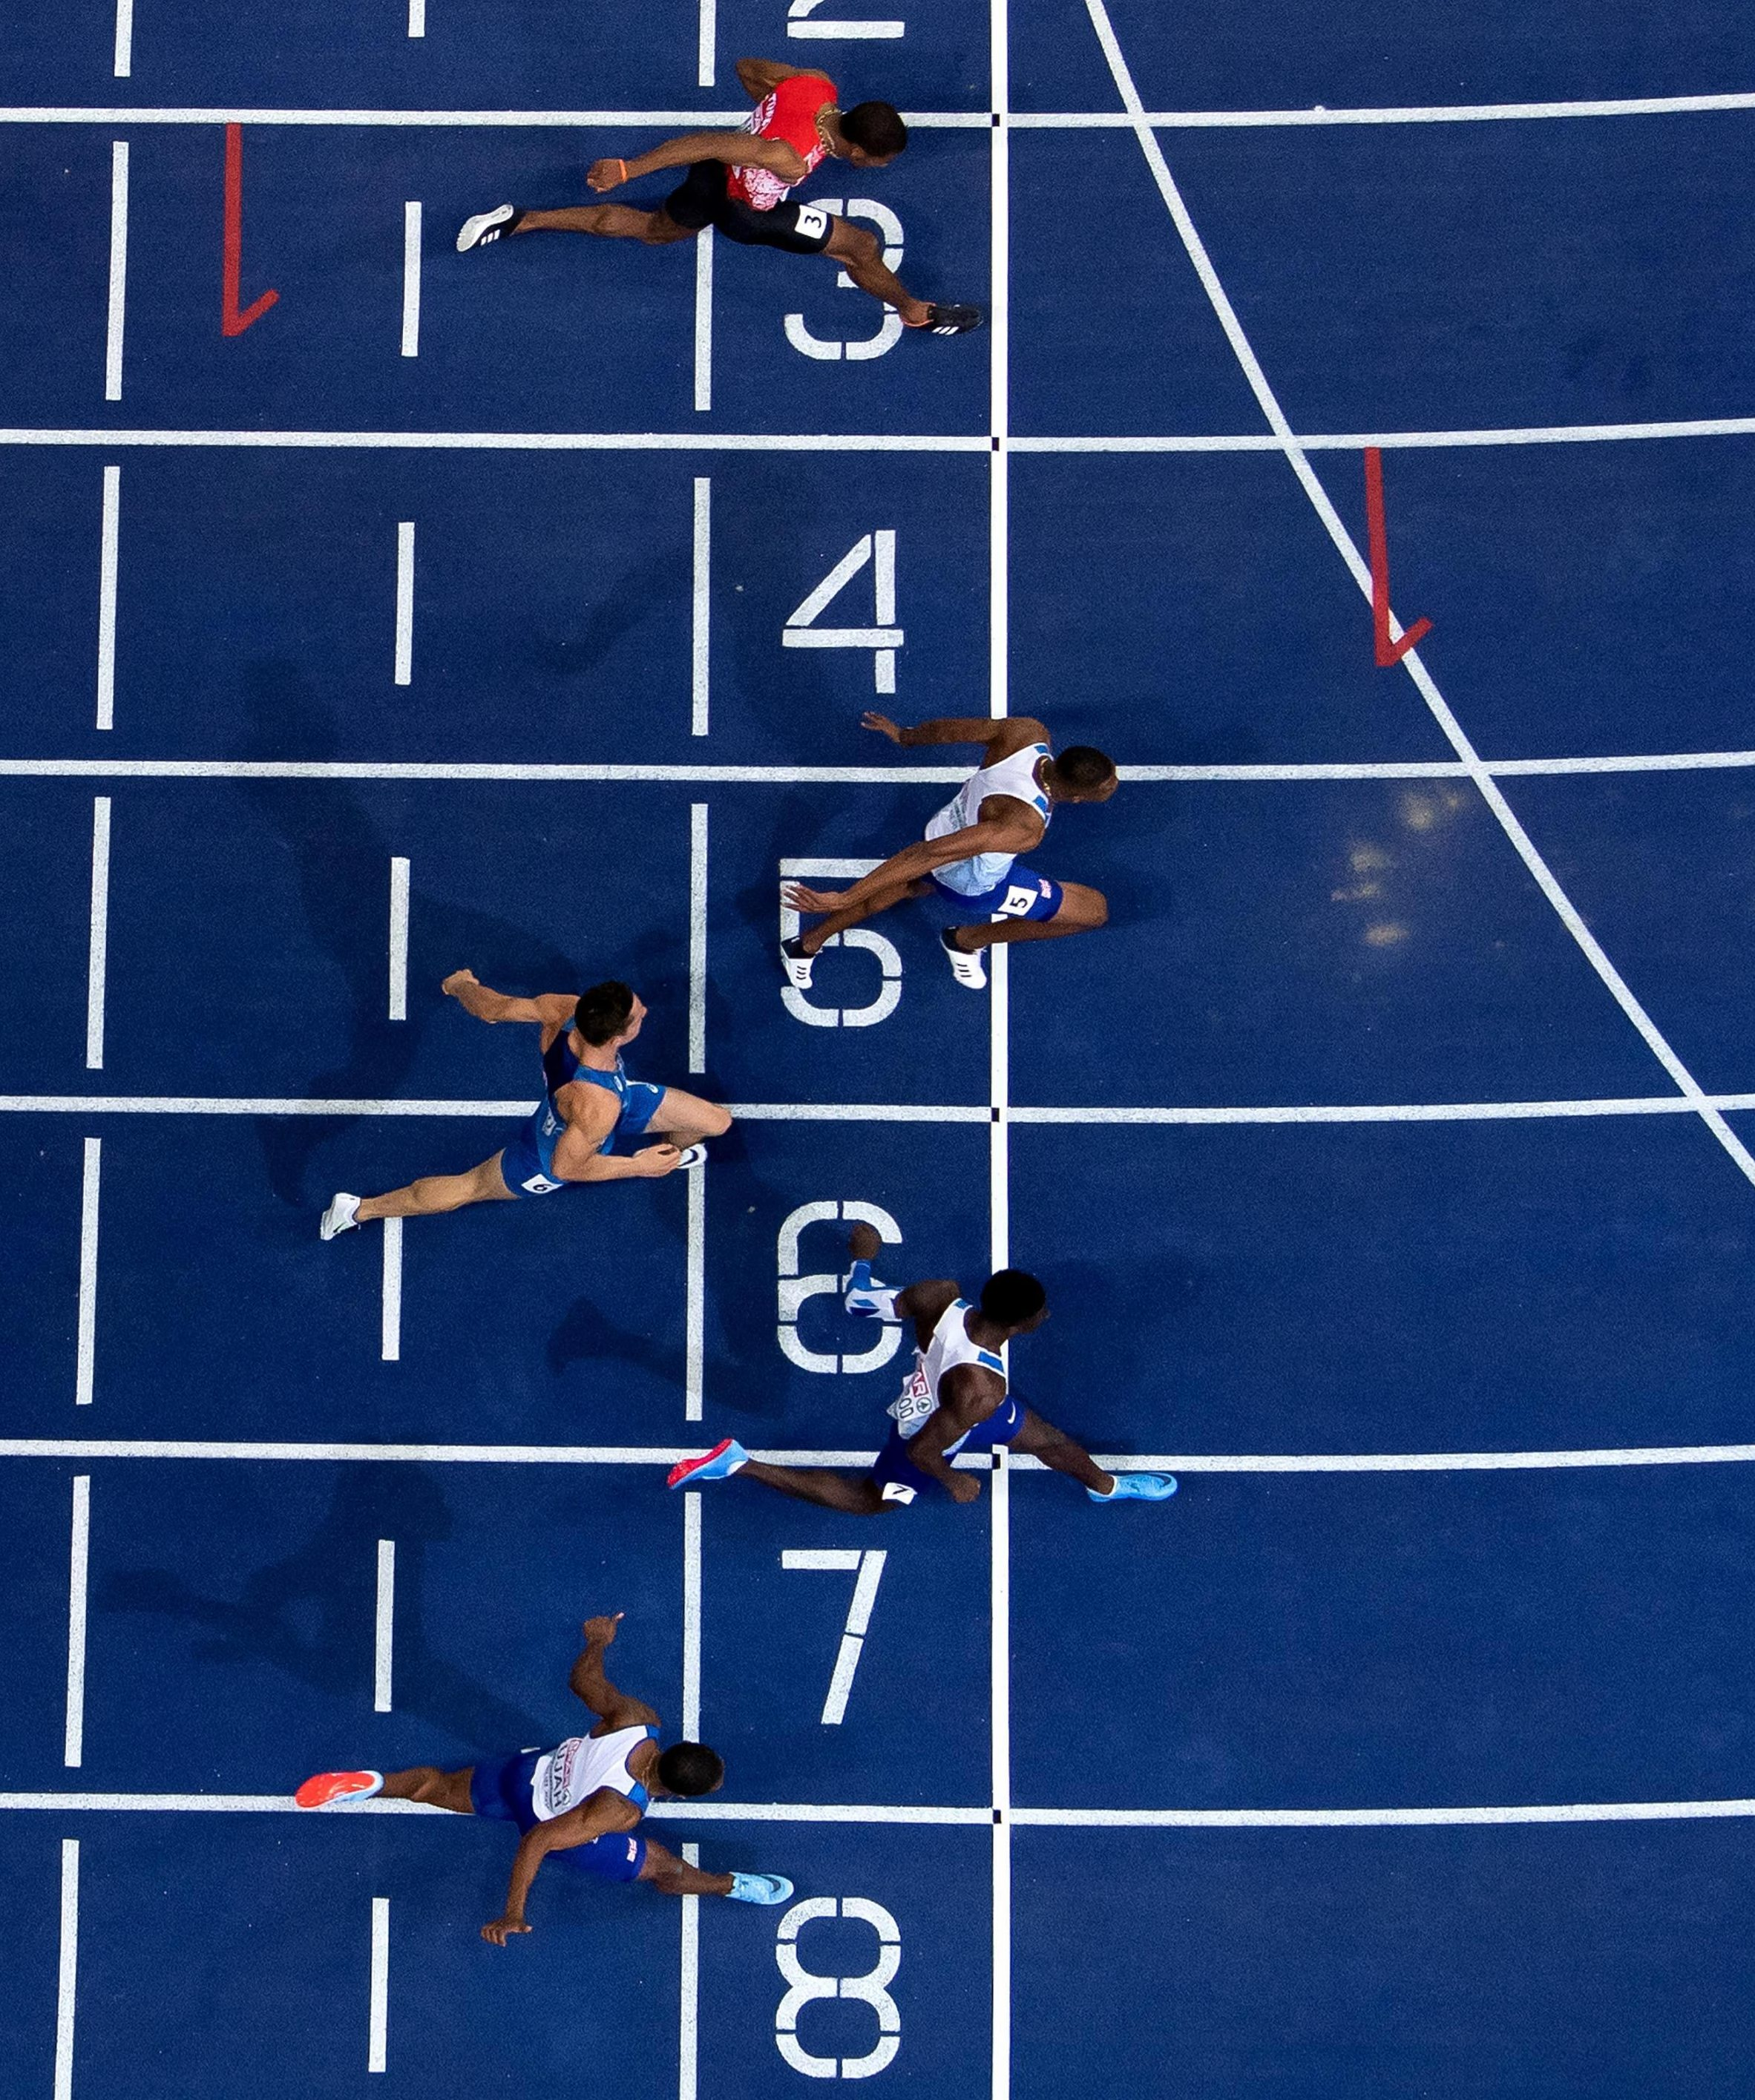 The finishing photos showed how close the two Brits were to each other in the end